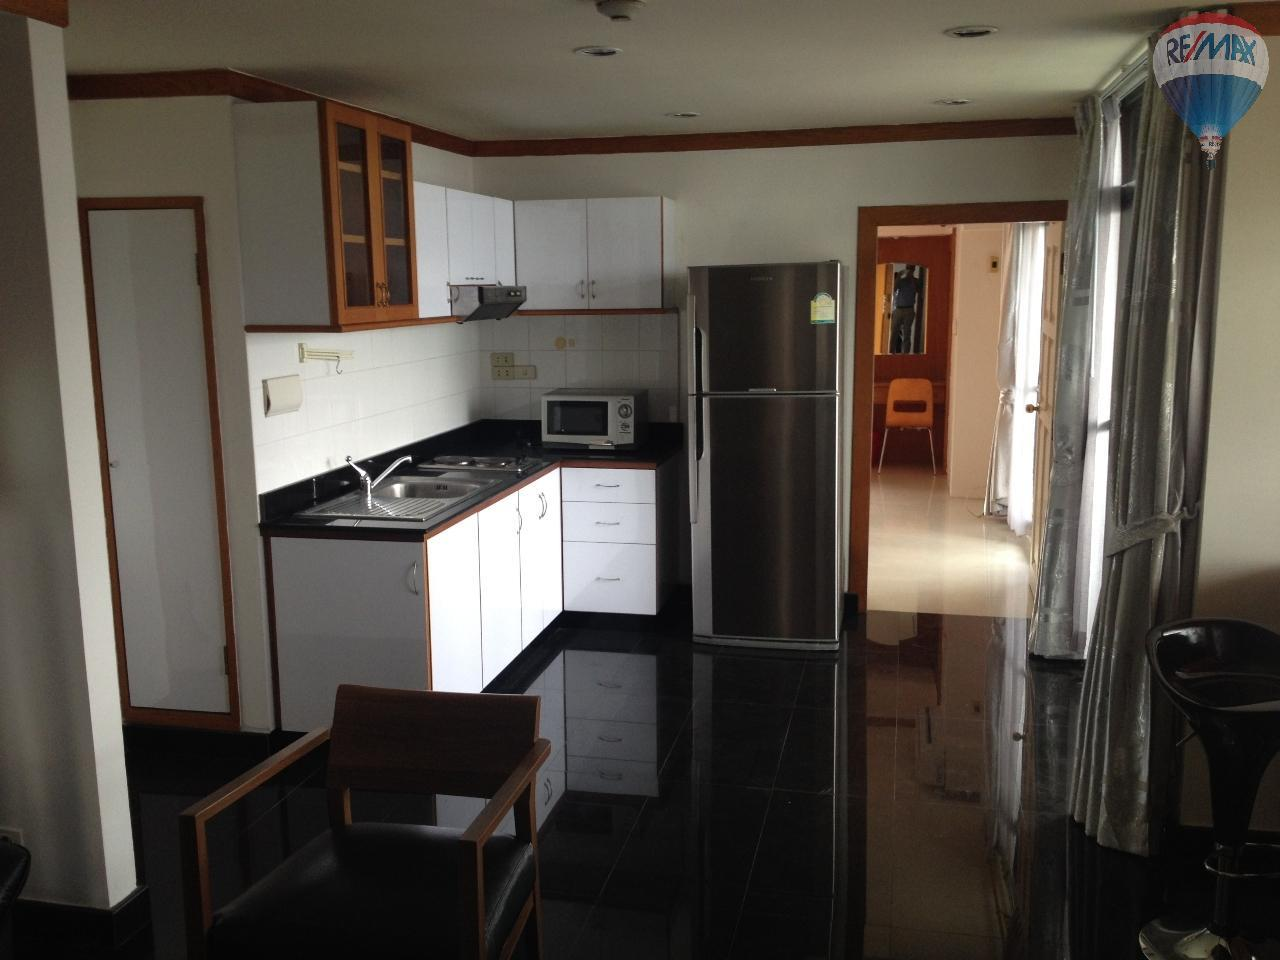 RE/MAX Properties Agency's JC Tower 2 Bedroom for Sale Thong Lor 82 sqm 1